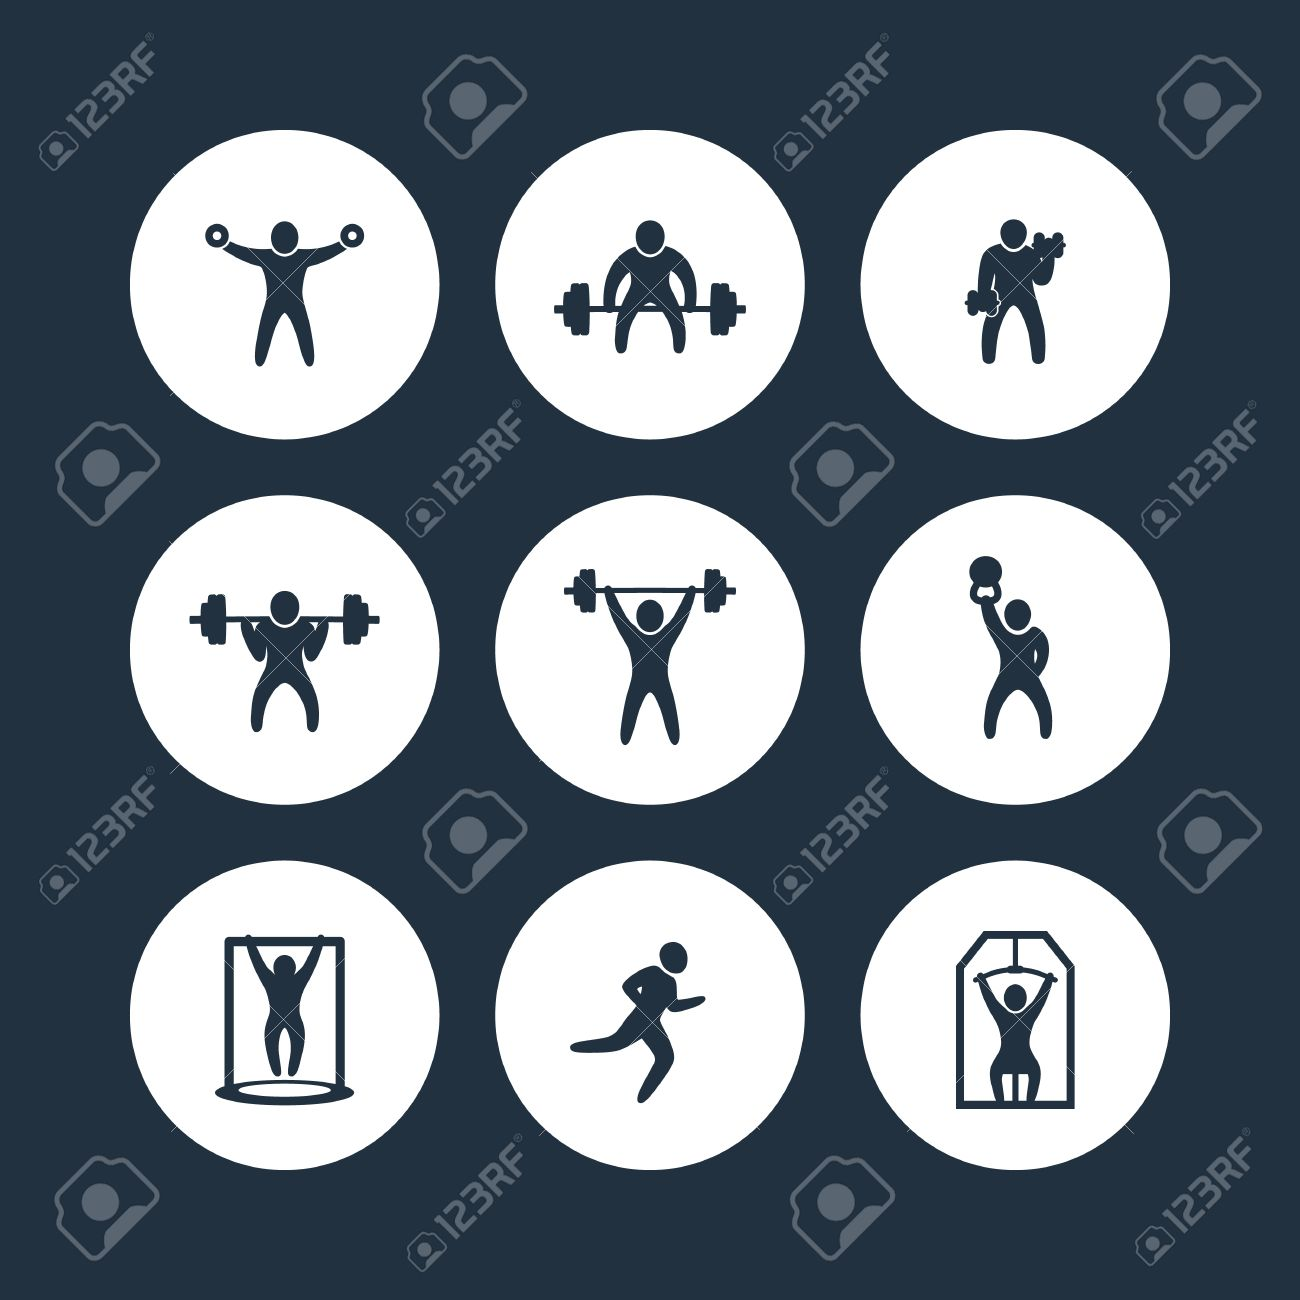 Gym Fitness Exercises Round Icons Training Workout Icon Vector Illustration Stock